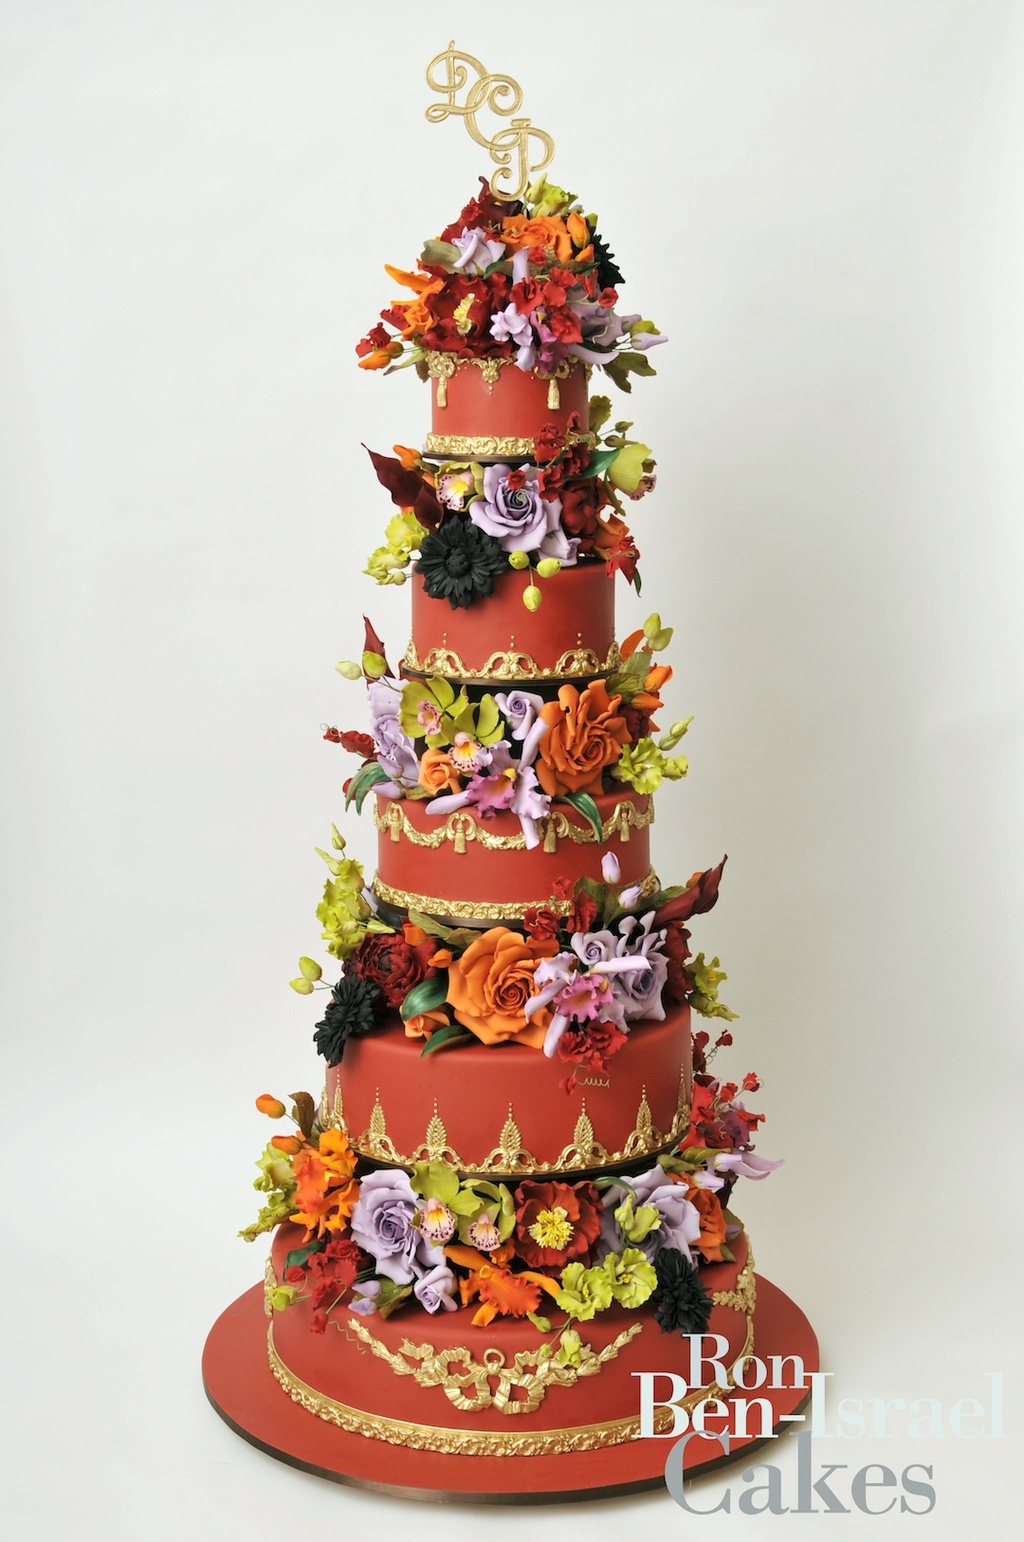 Wedding-cake-inspiration-ron-ben-isreal-wedding-cakes-terra-cotta-with-colorful-blooms.full